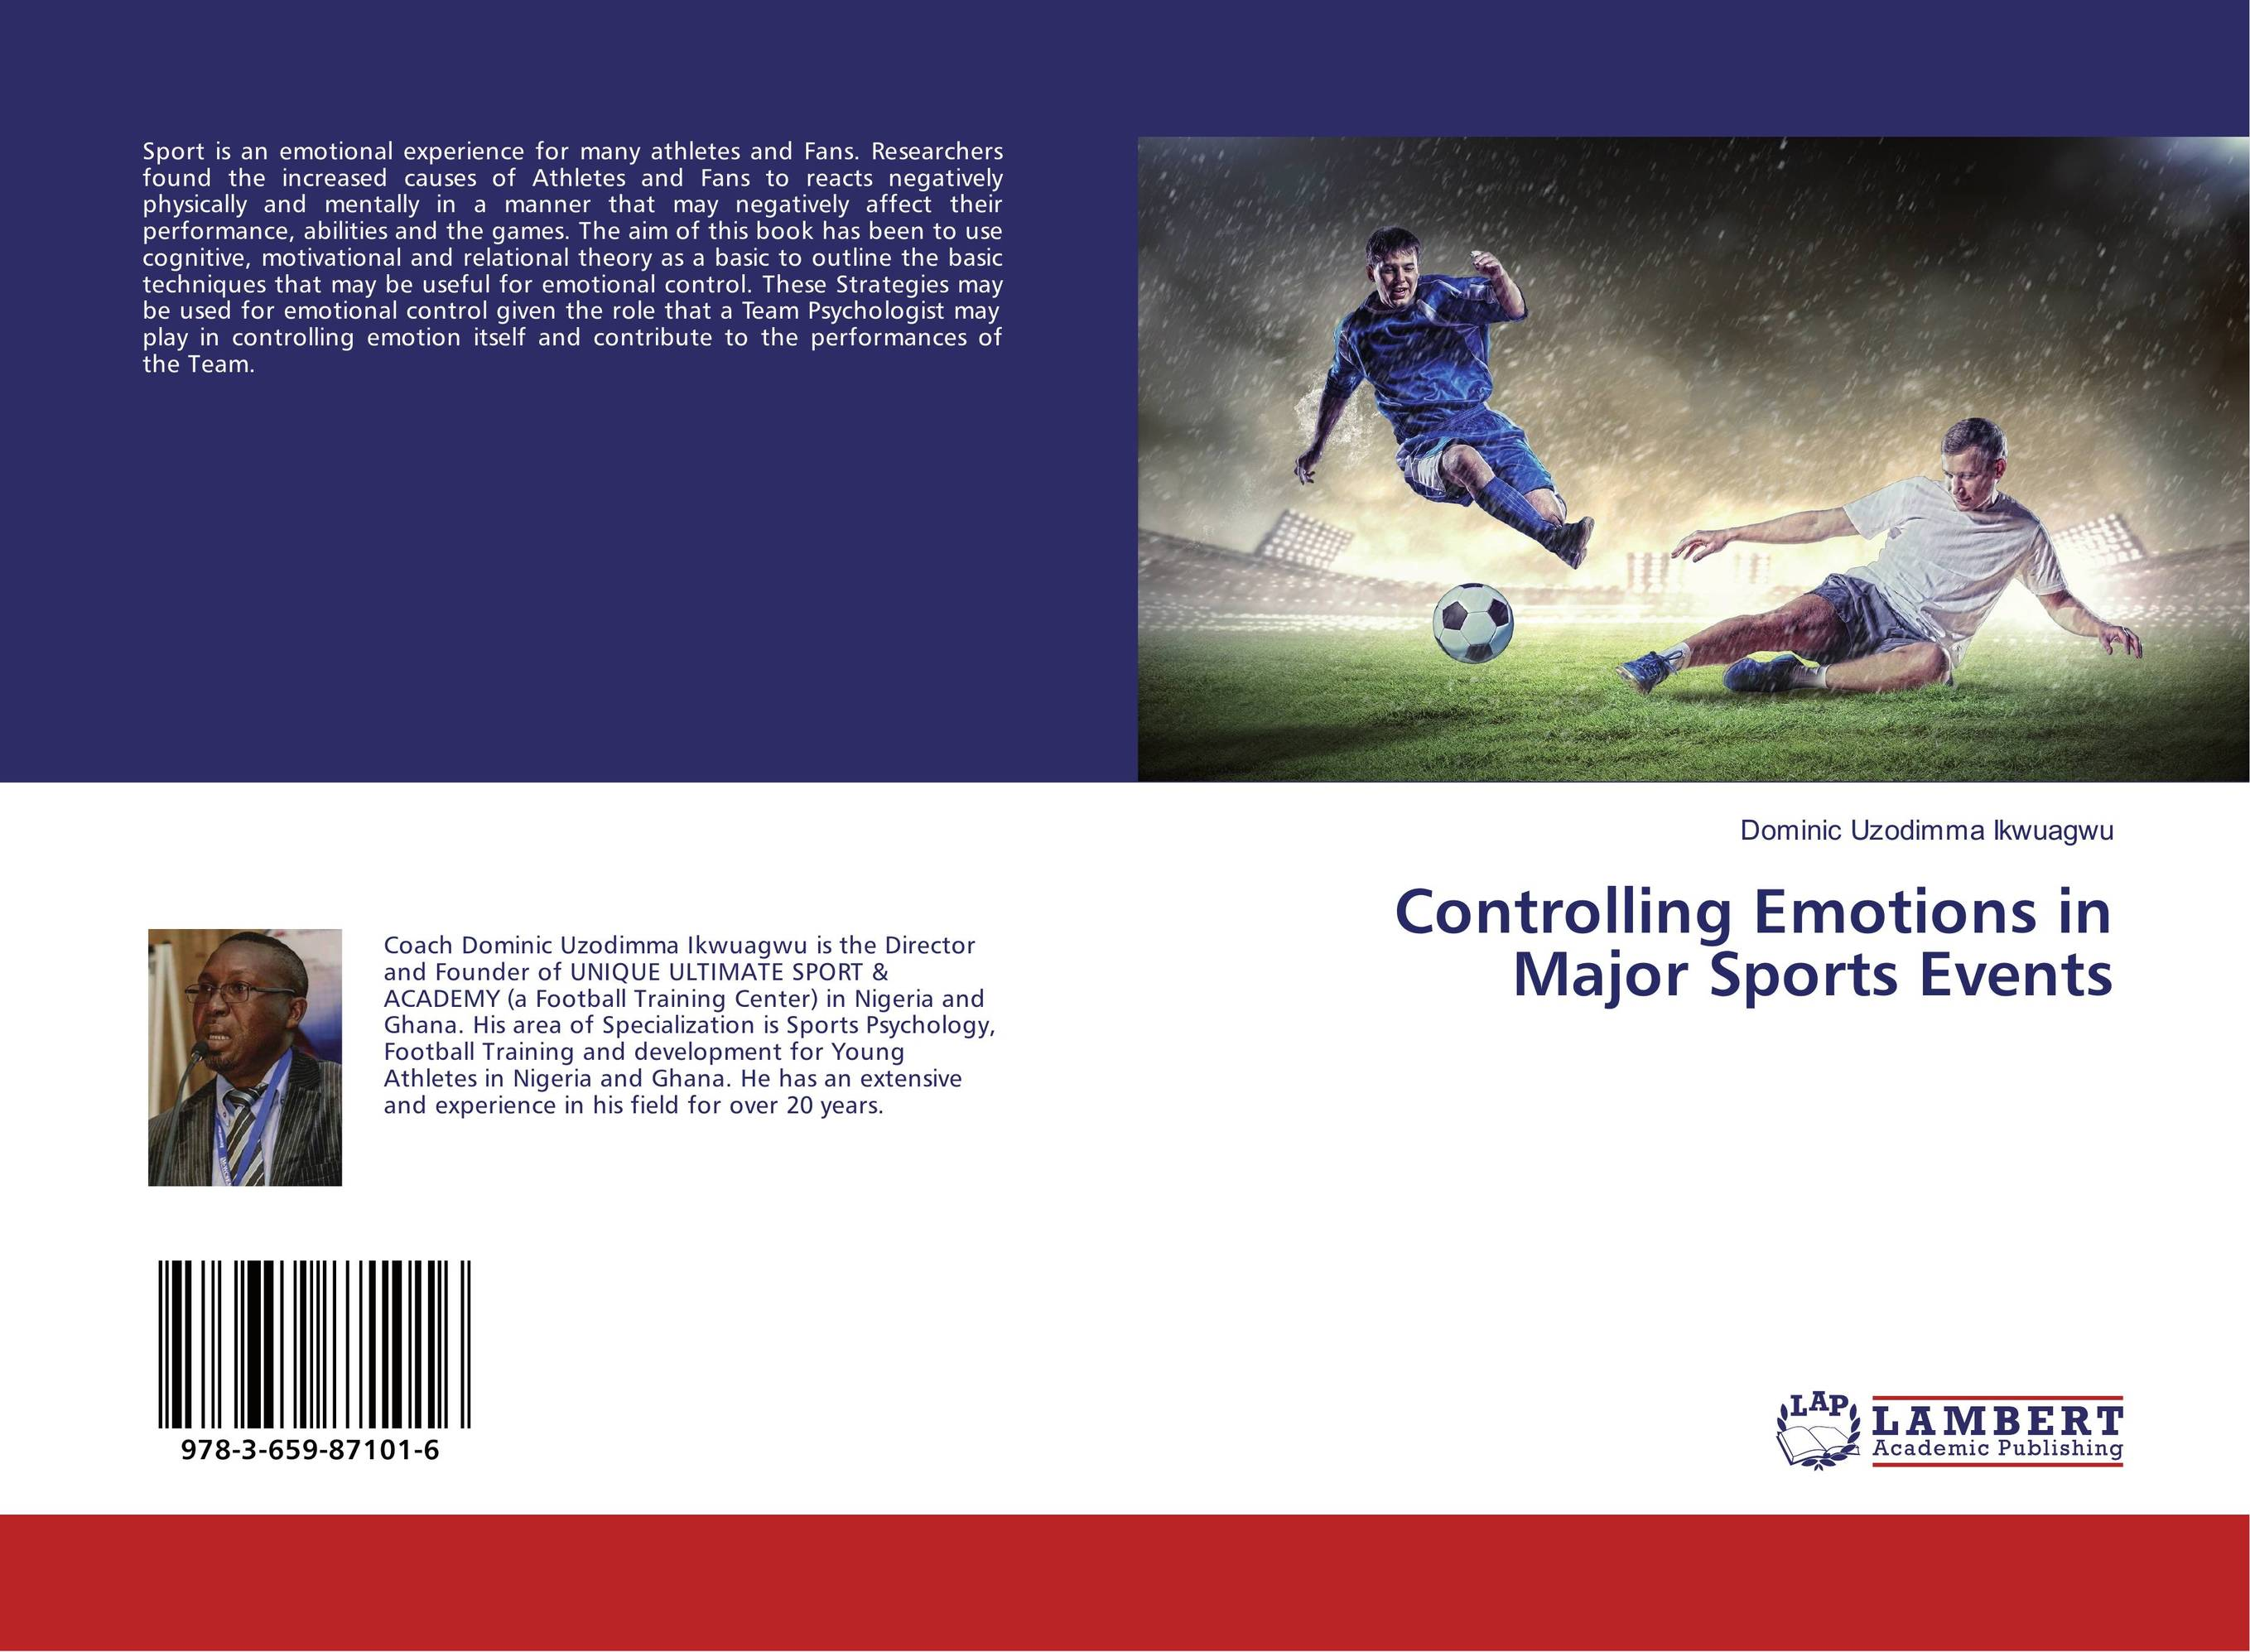 Controlling Emotions in Major Sports Events